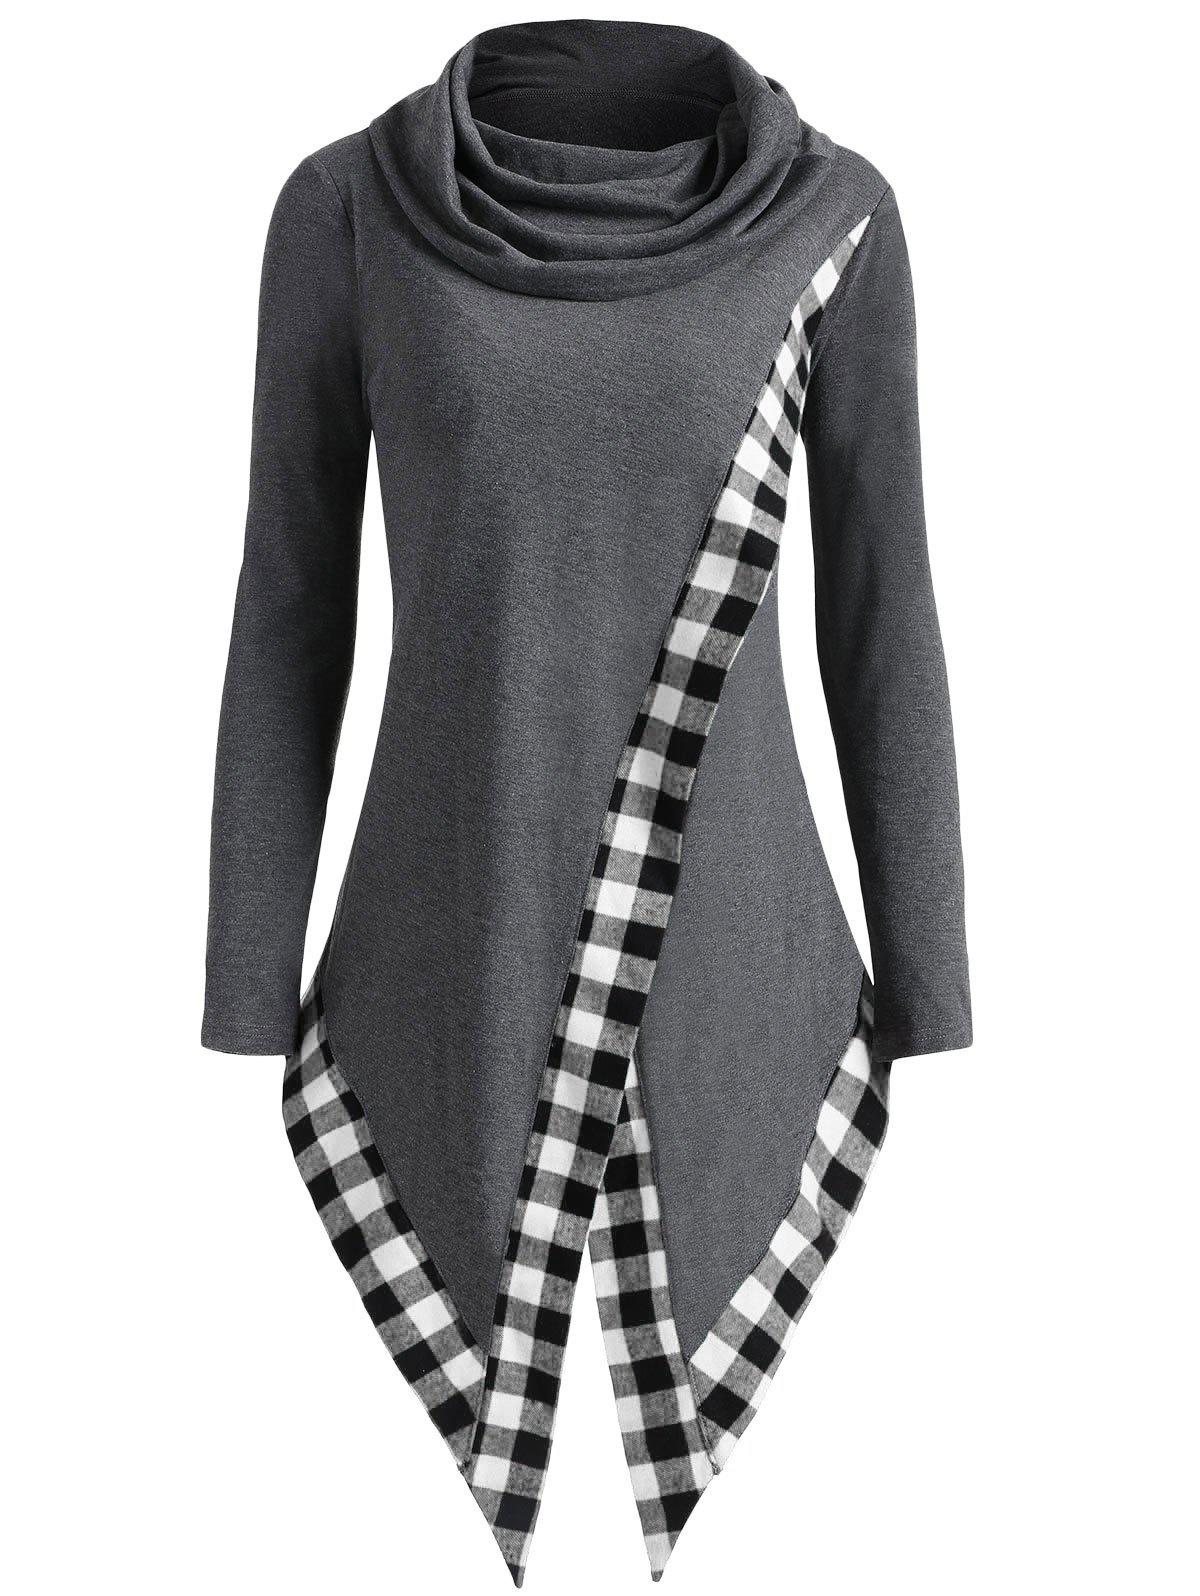 Asymmetric Plaid Panel Heap Collar Overlap Top - COLORMIX M